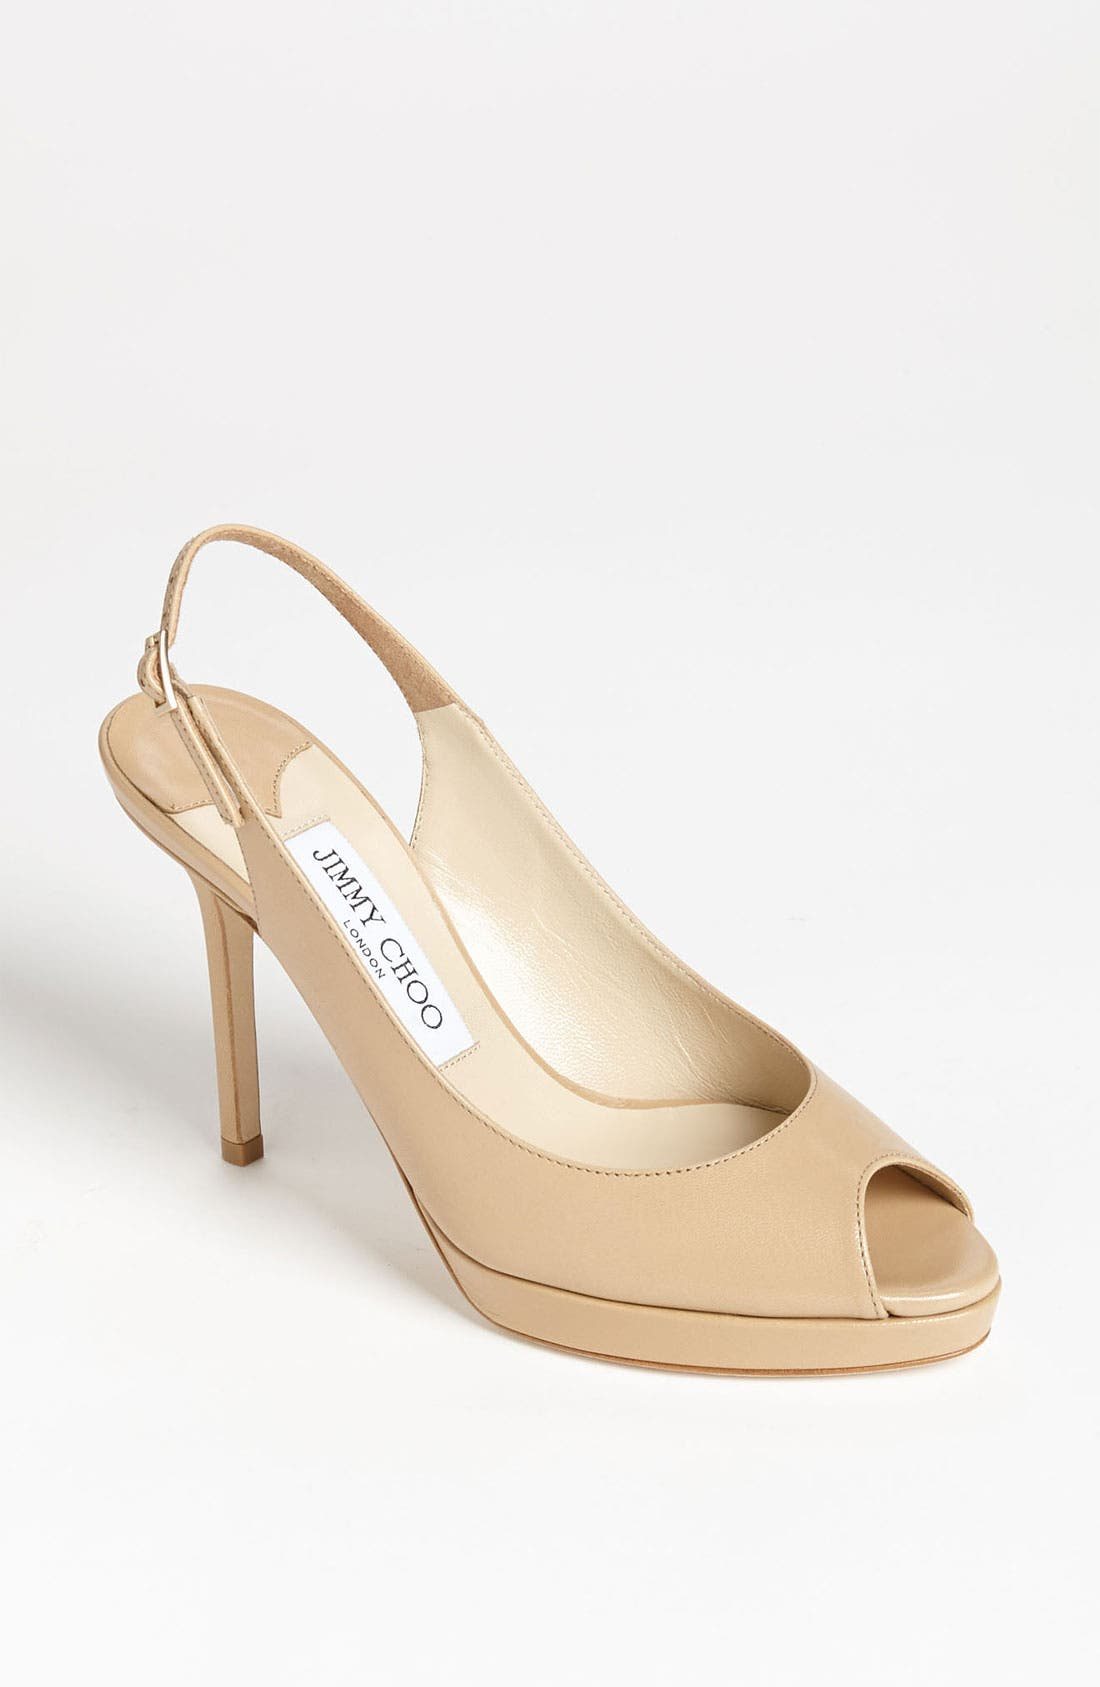 Main Image - Jimmy Choo 'Nova' Pump